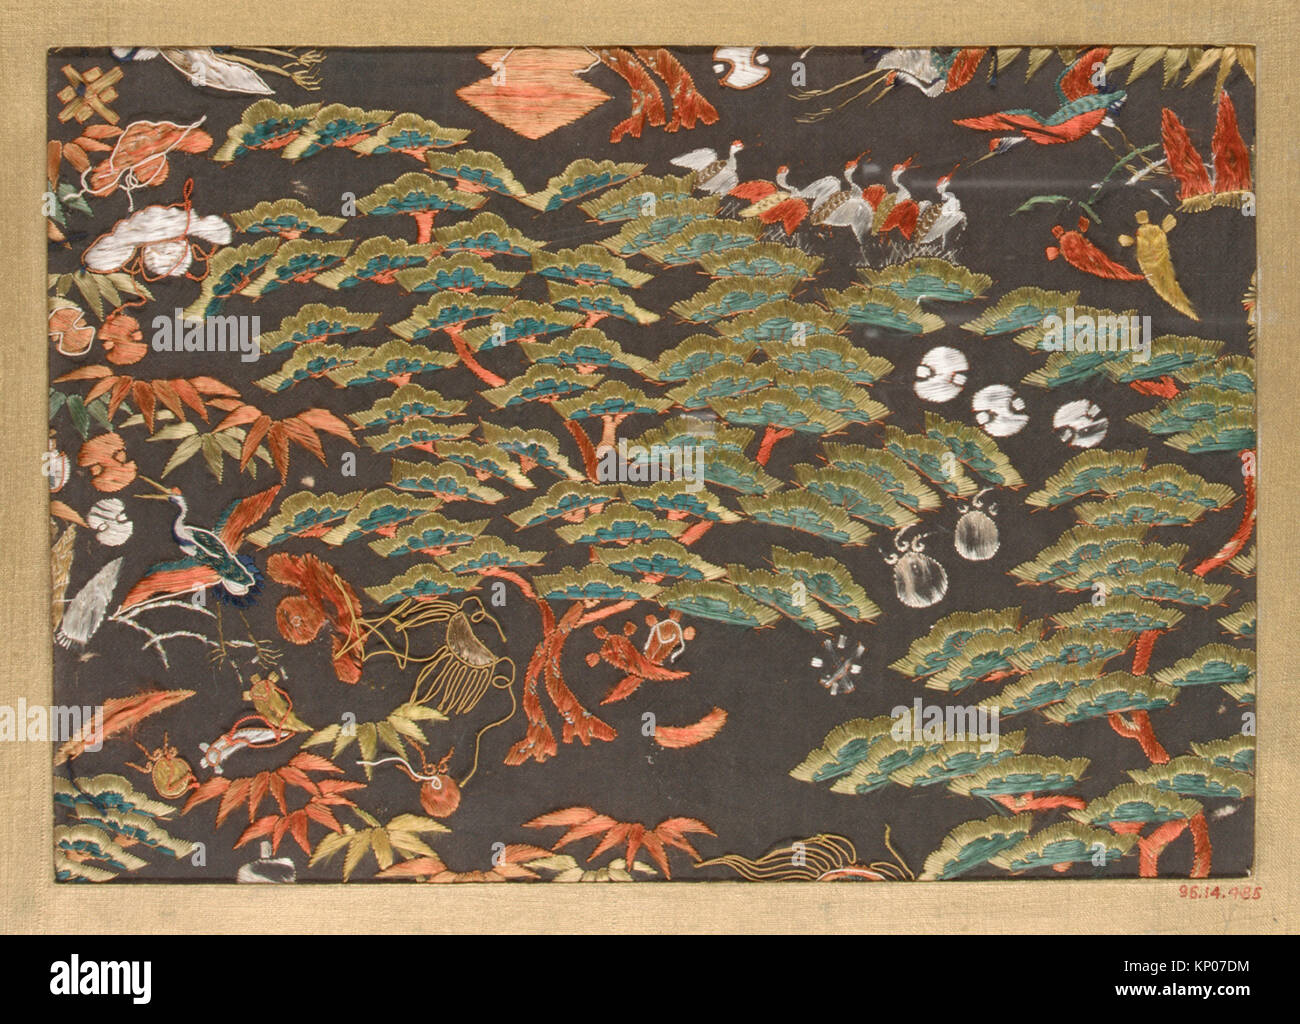 Textile fragment with pattern of pine, cranes, and auspicious symbols. Period: Edo (1615-1868); Date: 18th-19th - Stock Image